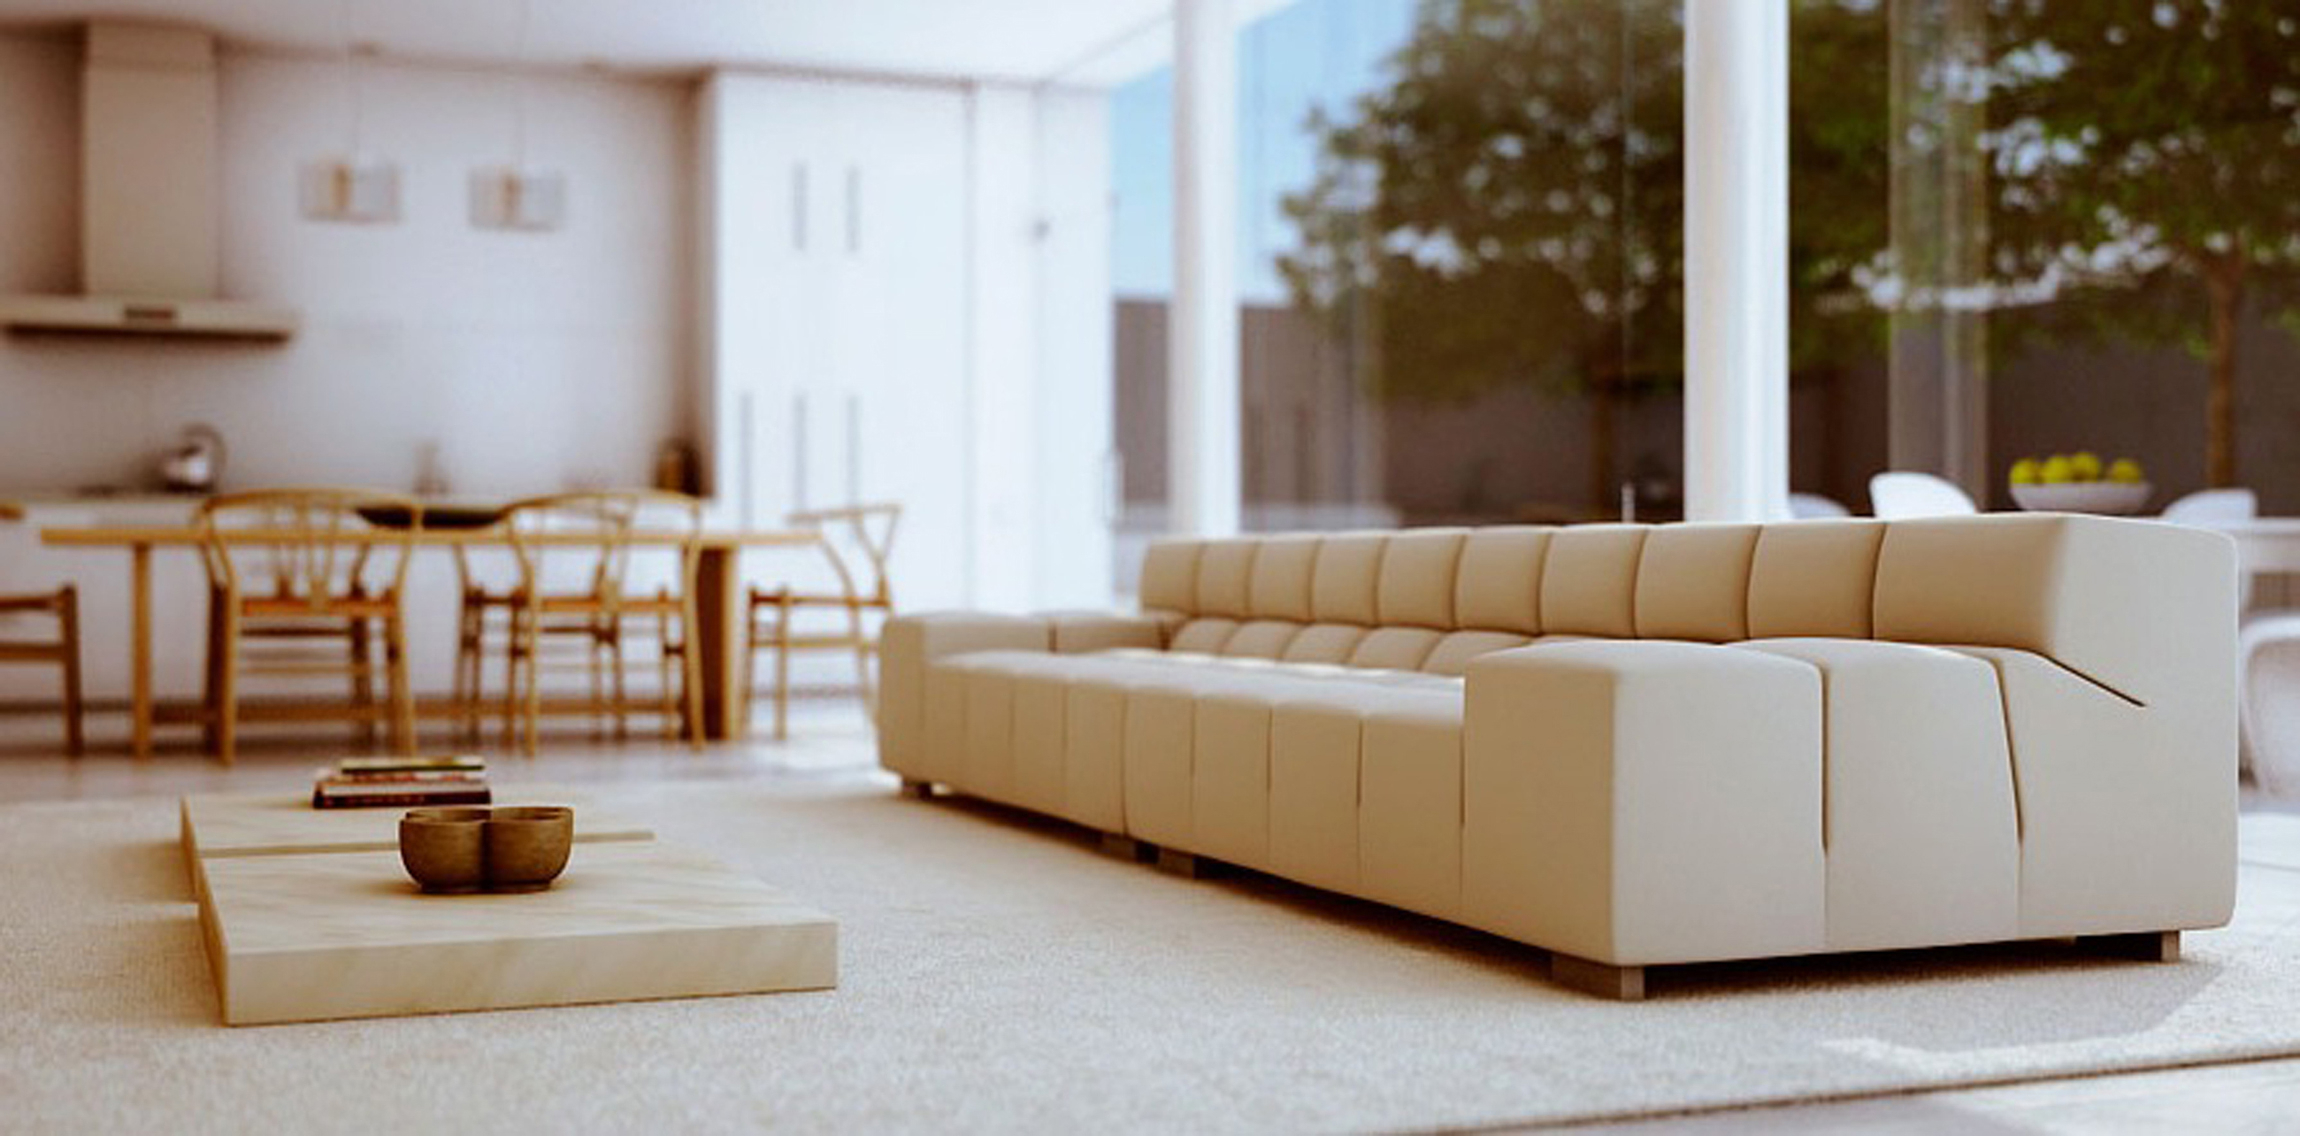 Modern Living Room Couch (Image 1 of 30)